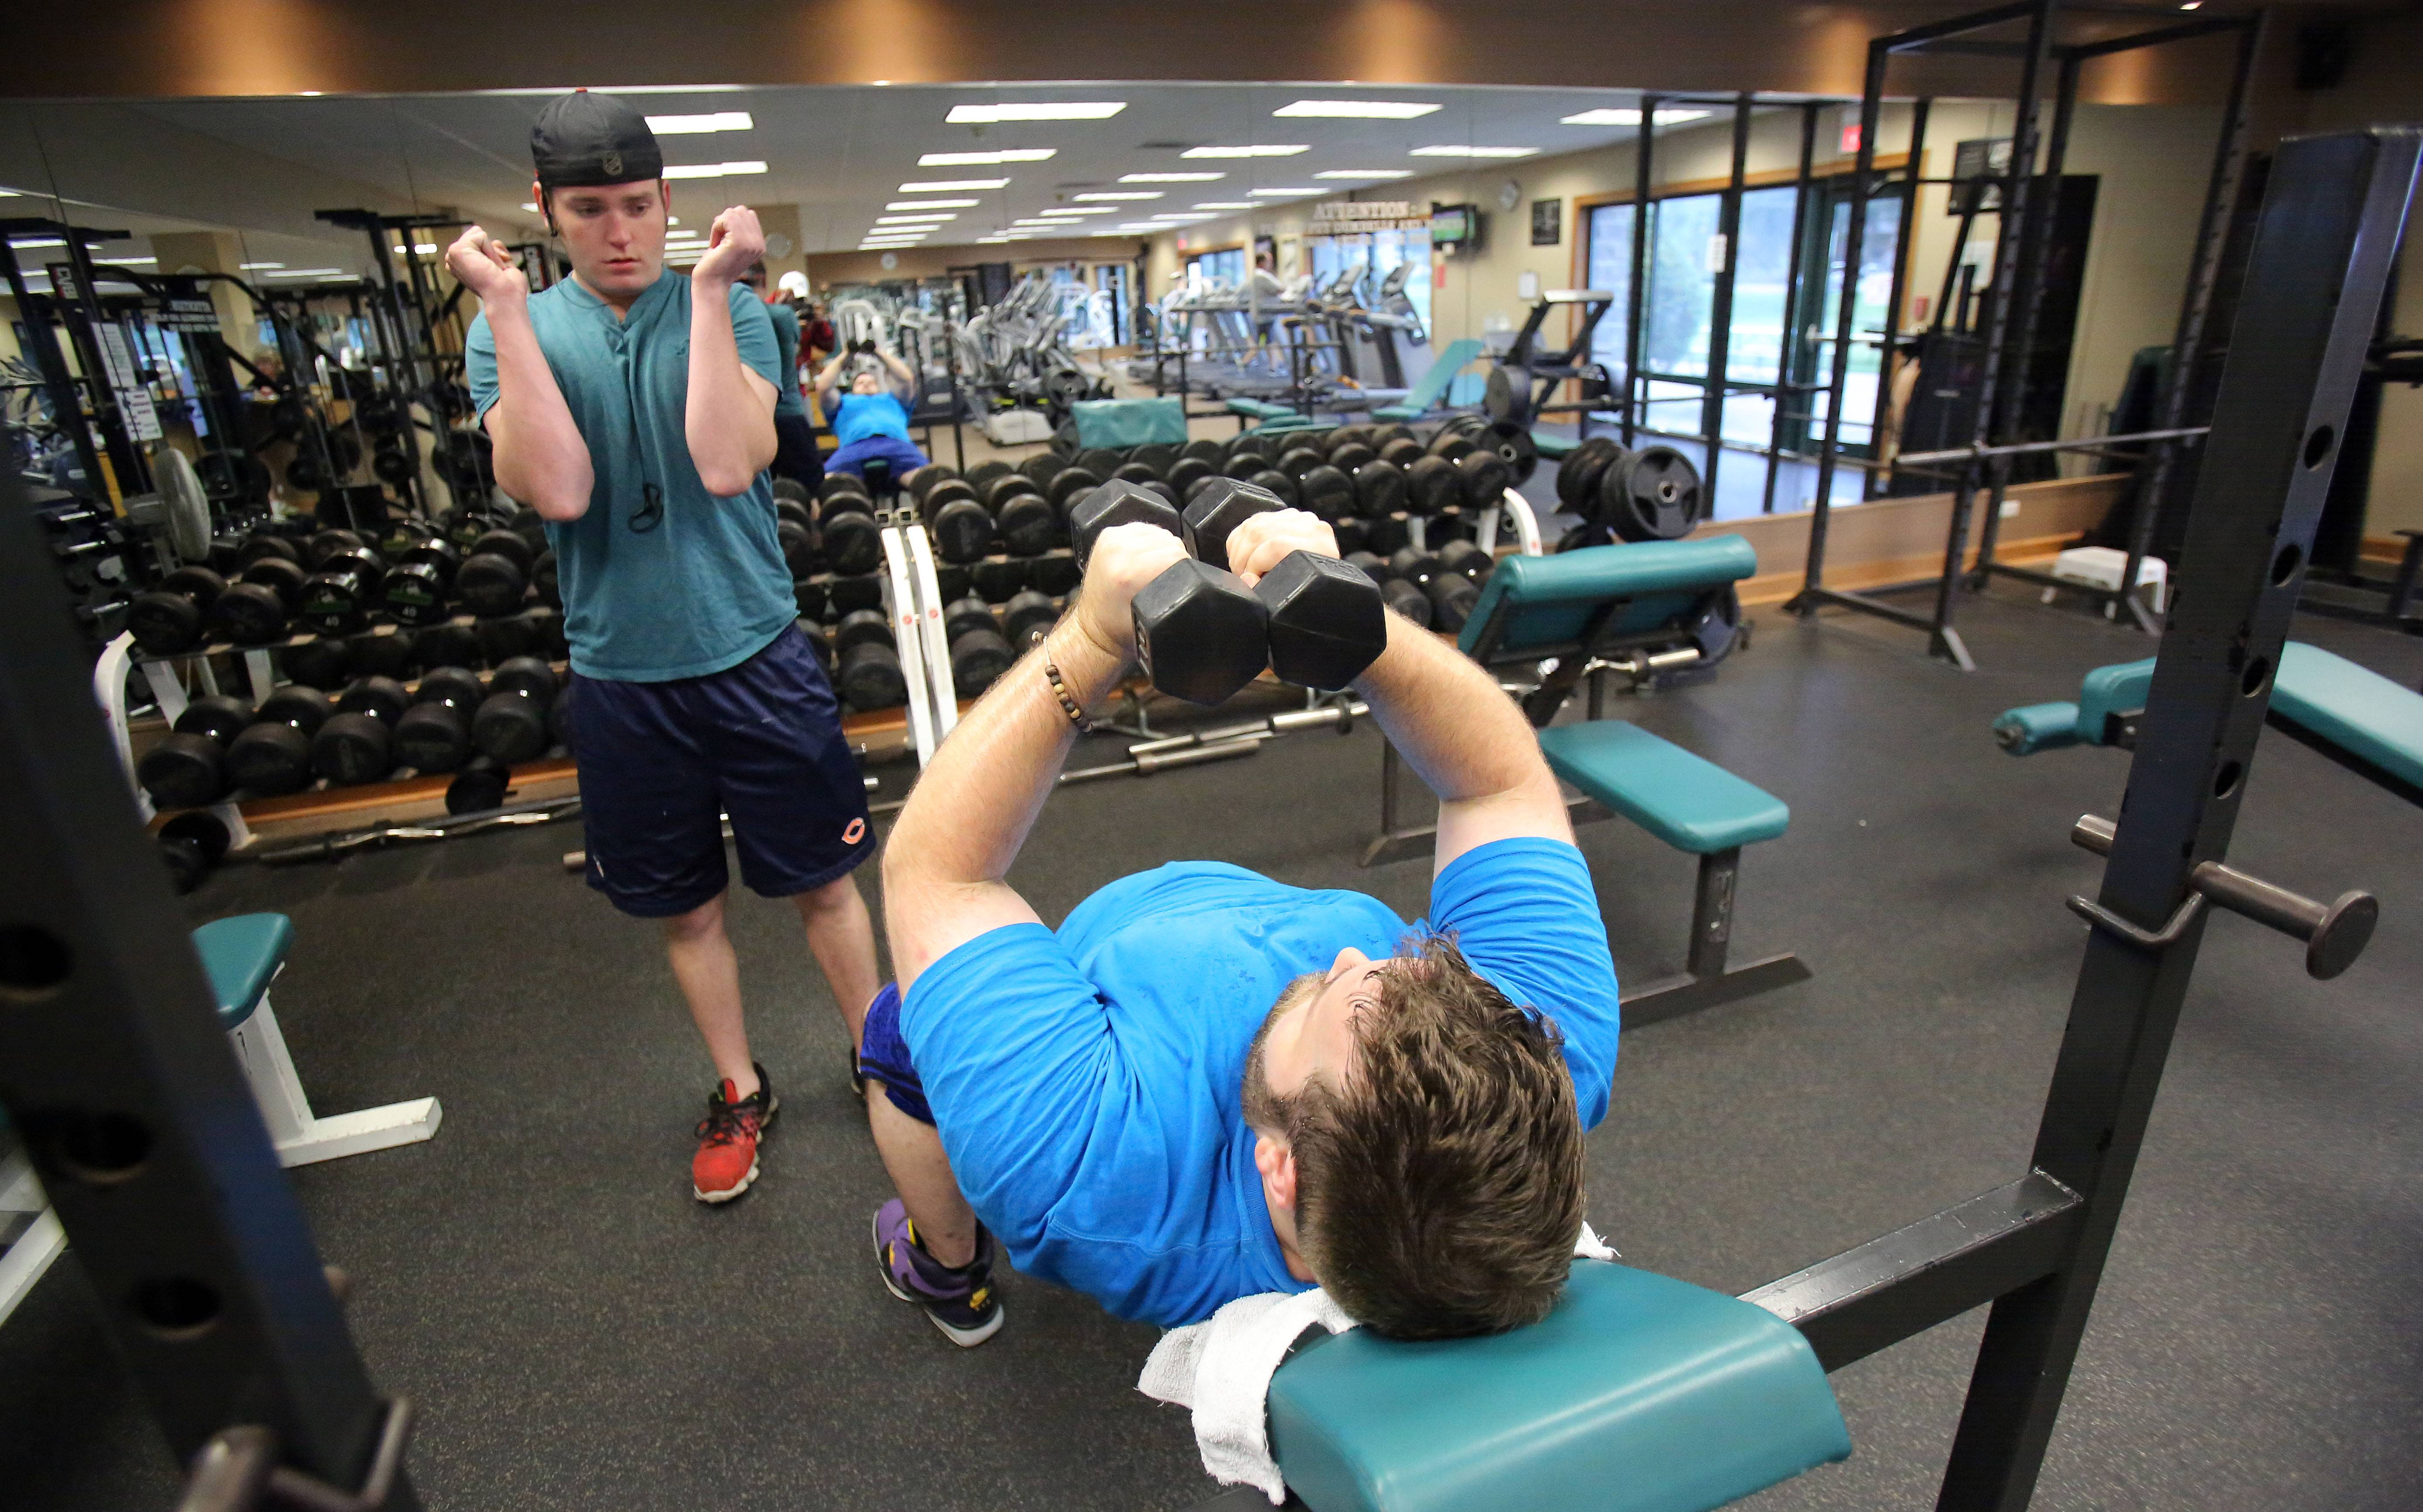 Ryan Shepherd, left, and Justin Johnsen, both of Wauconda, work out at the Wauconda Community Center Tuesday. An expansion of the center could create more fitness space.